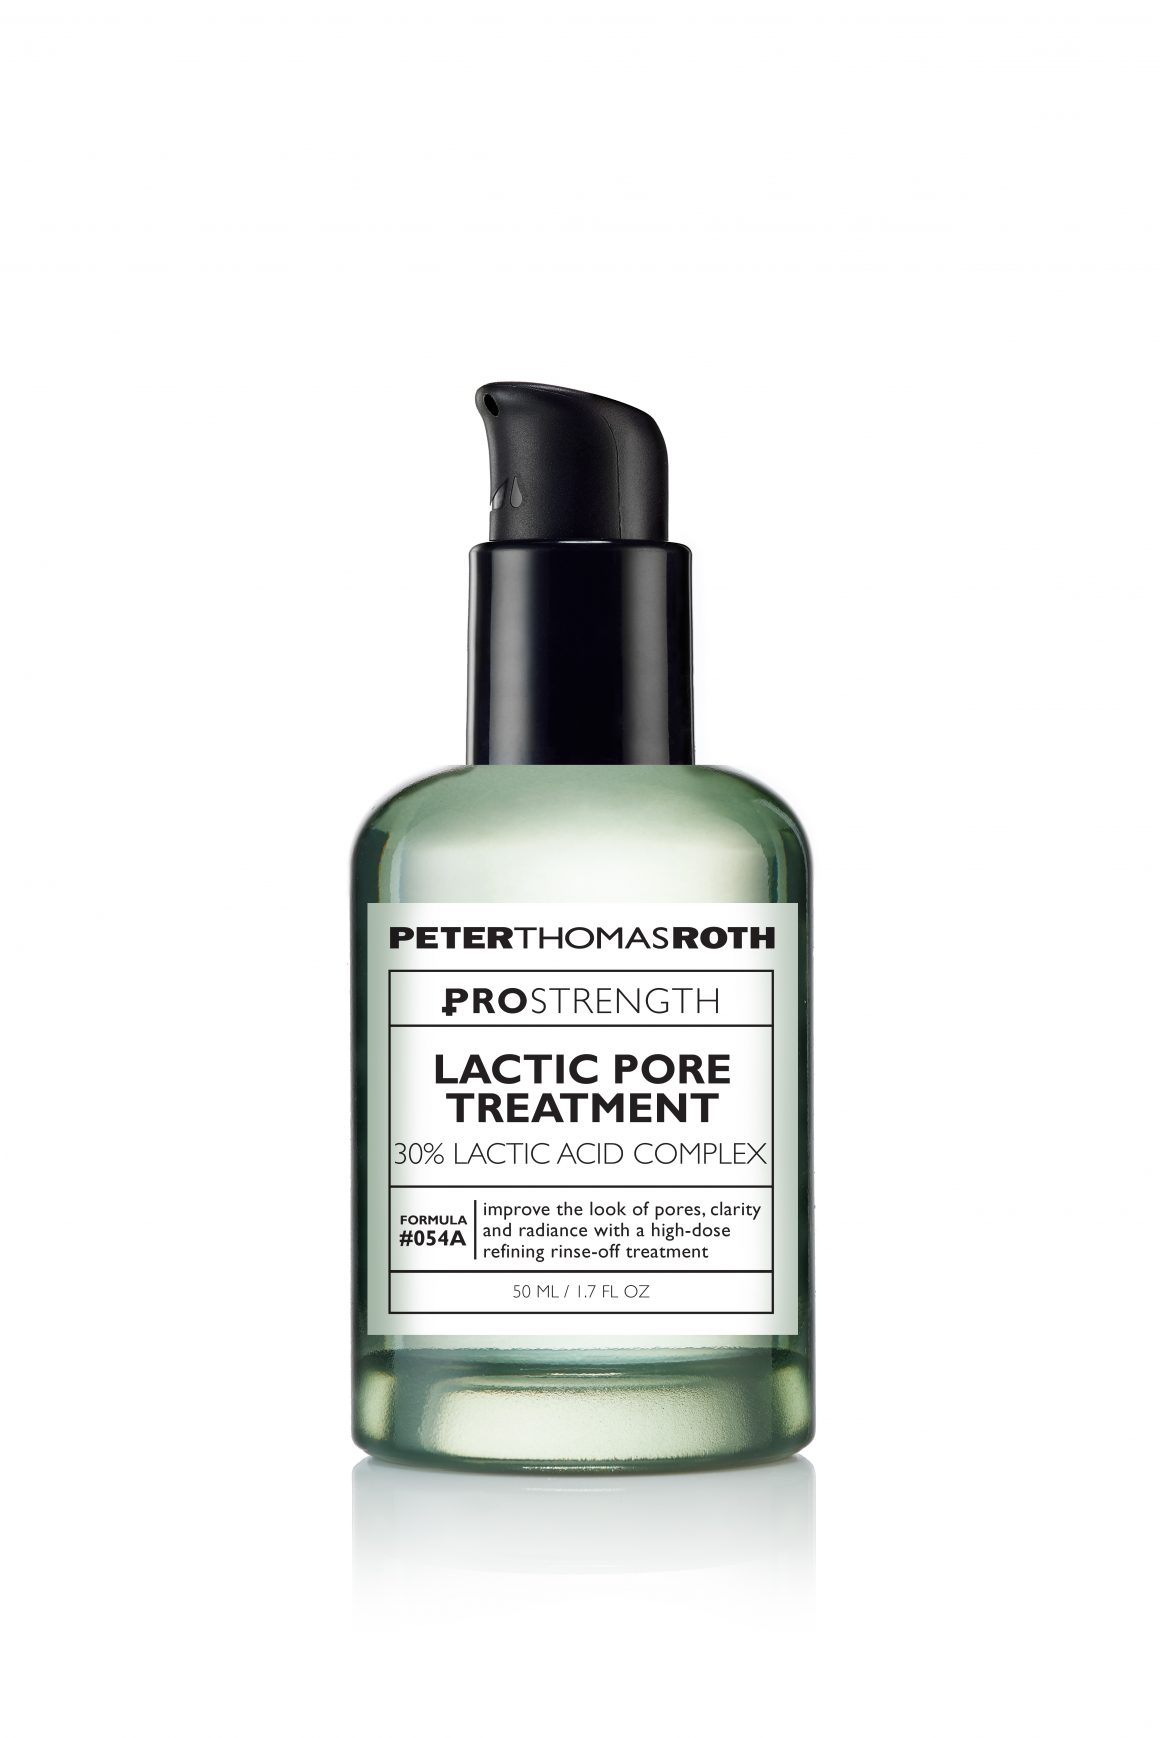 You'll Need These Two Skincare Products from Peter Thomas Roth 1